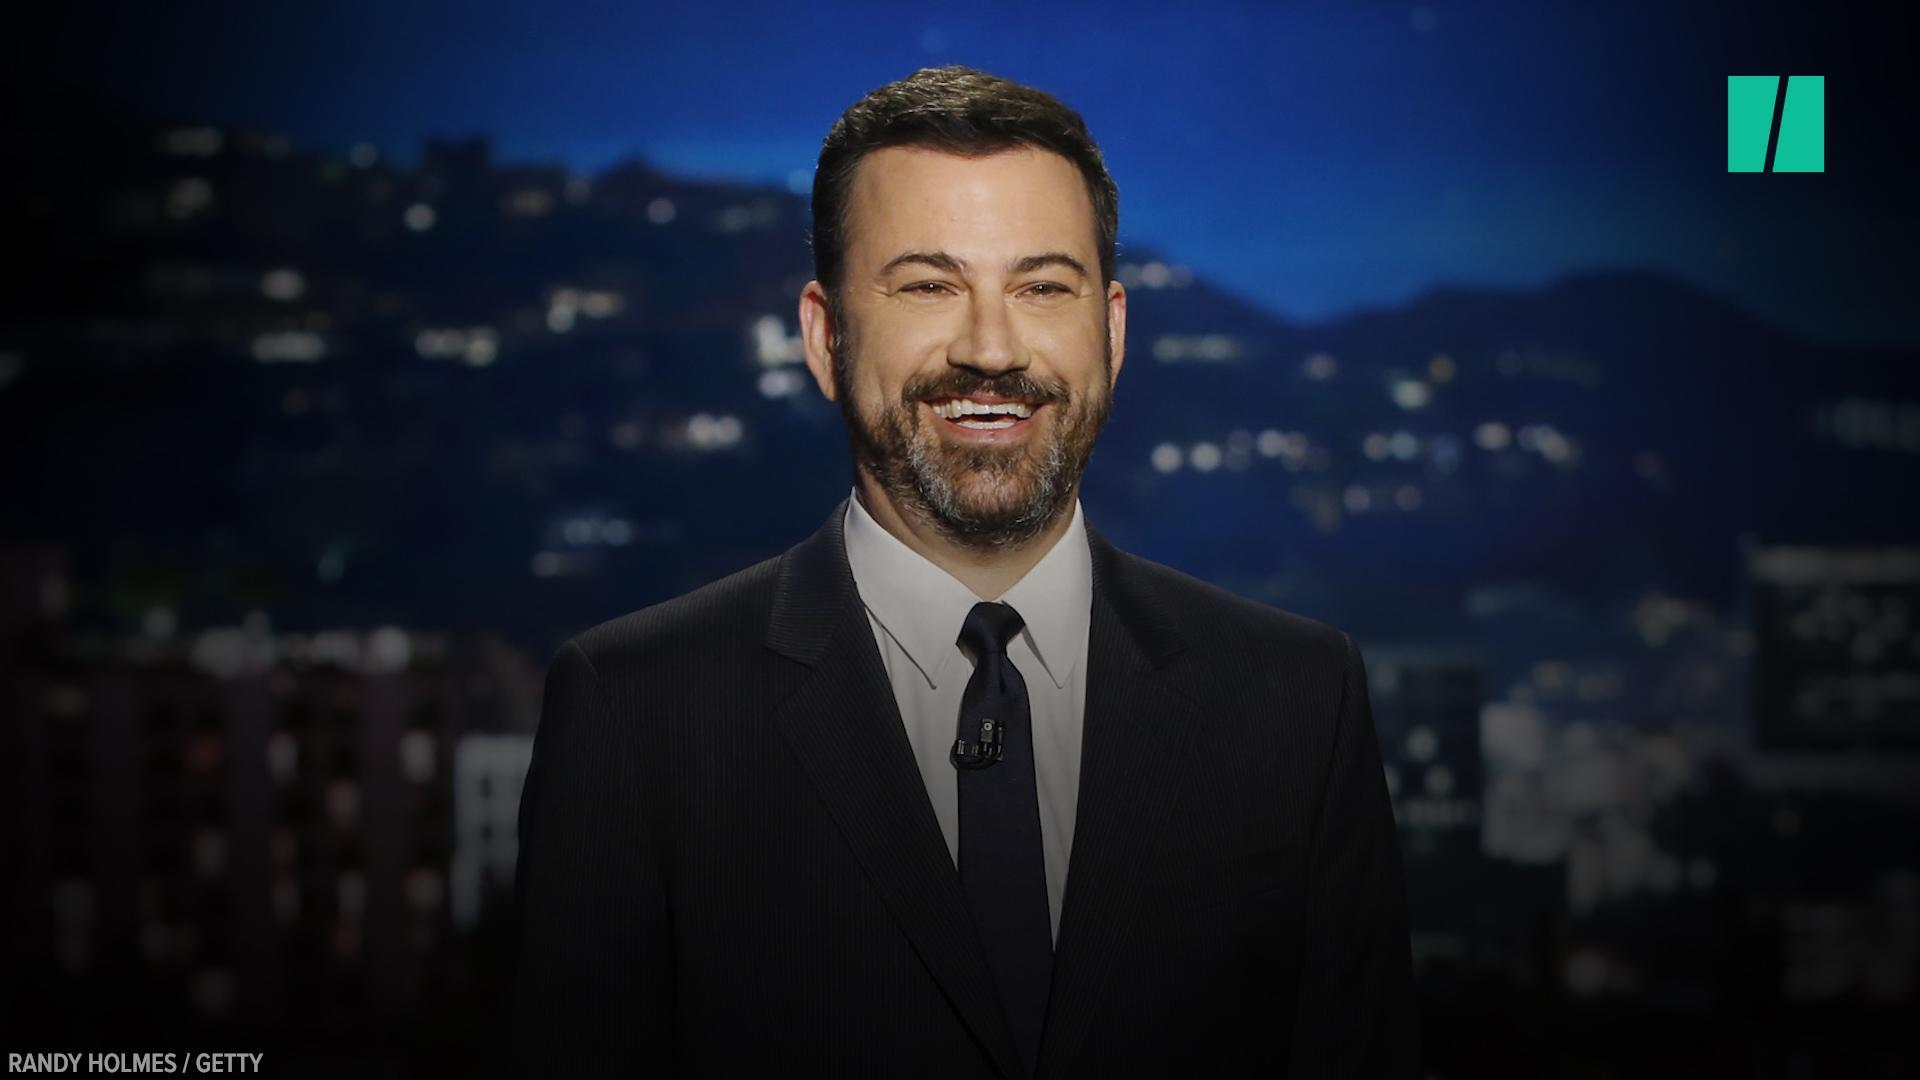 'Grateful' Jimmy Kimmel Shares Birthday Update On Son Who Inspired Health Care Plea